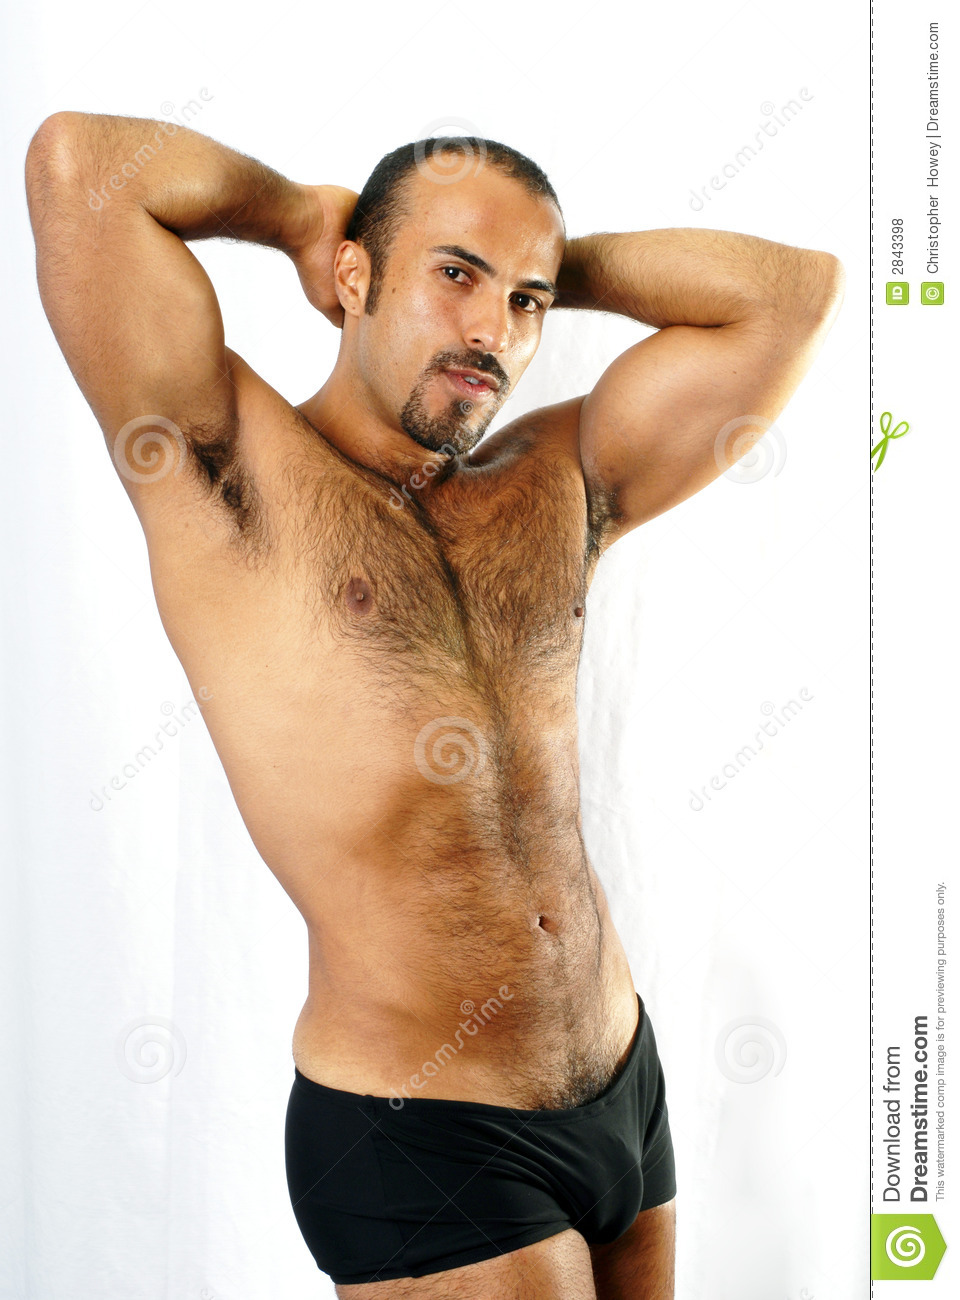 This image shows a muscular Hispanic man with trimmed chest hair in a  sexualized pose.